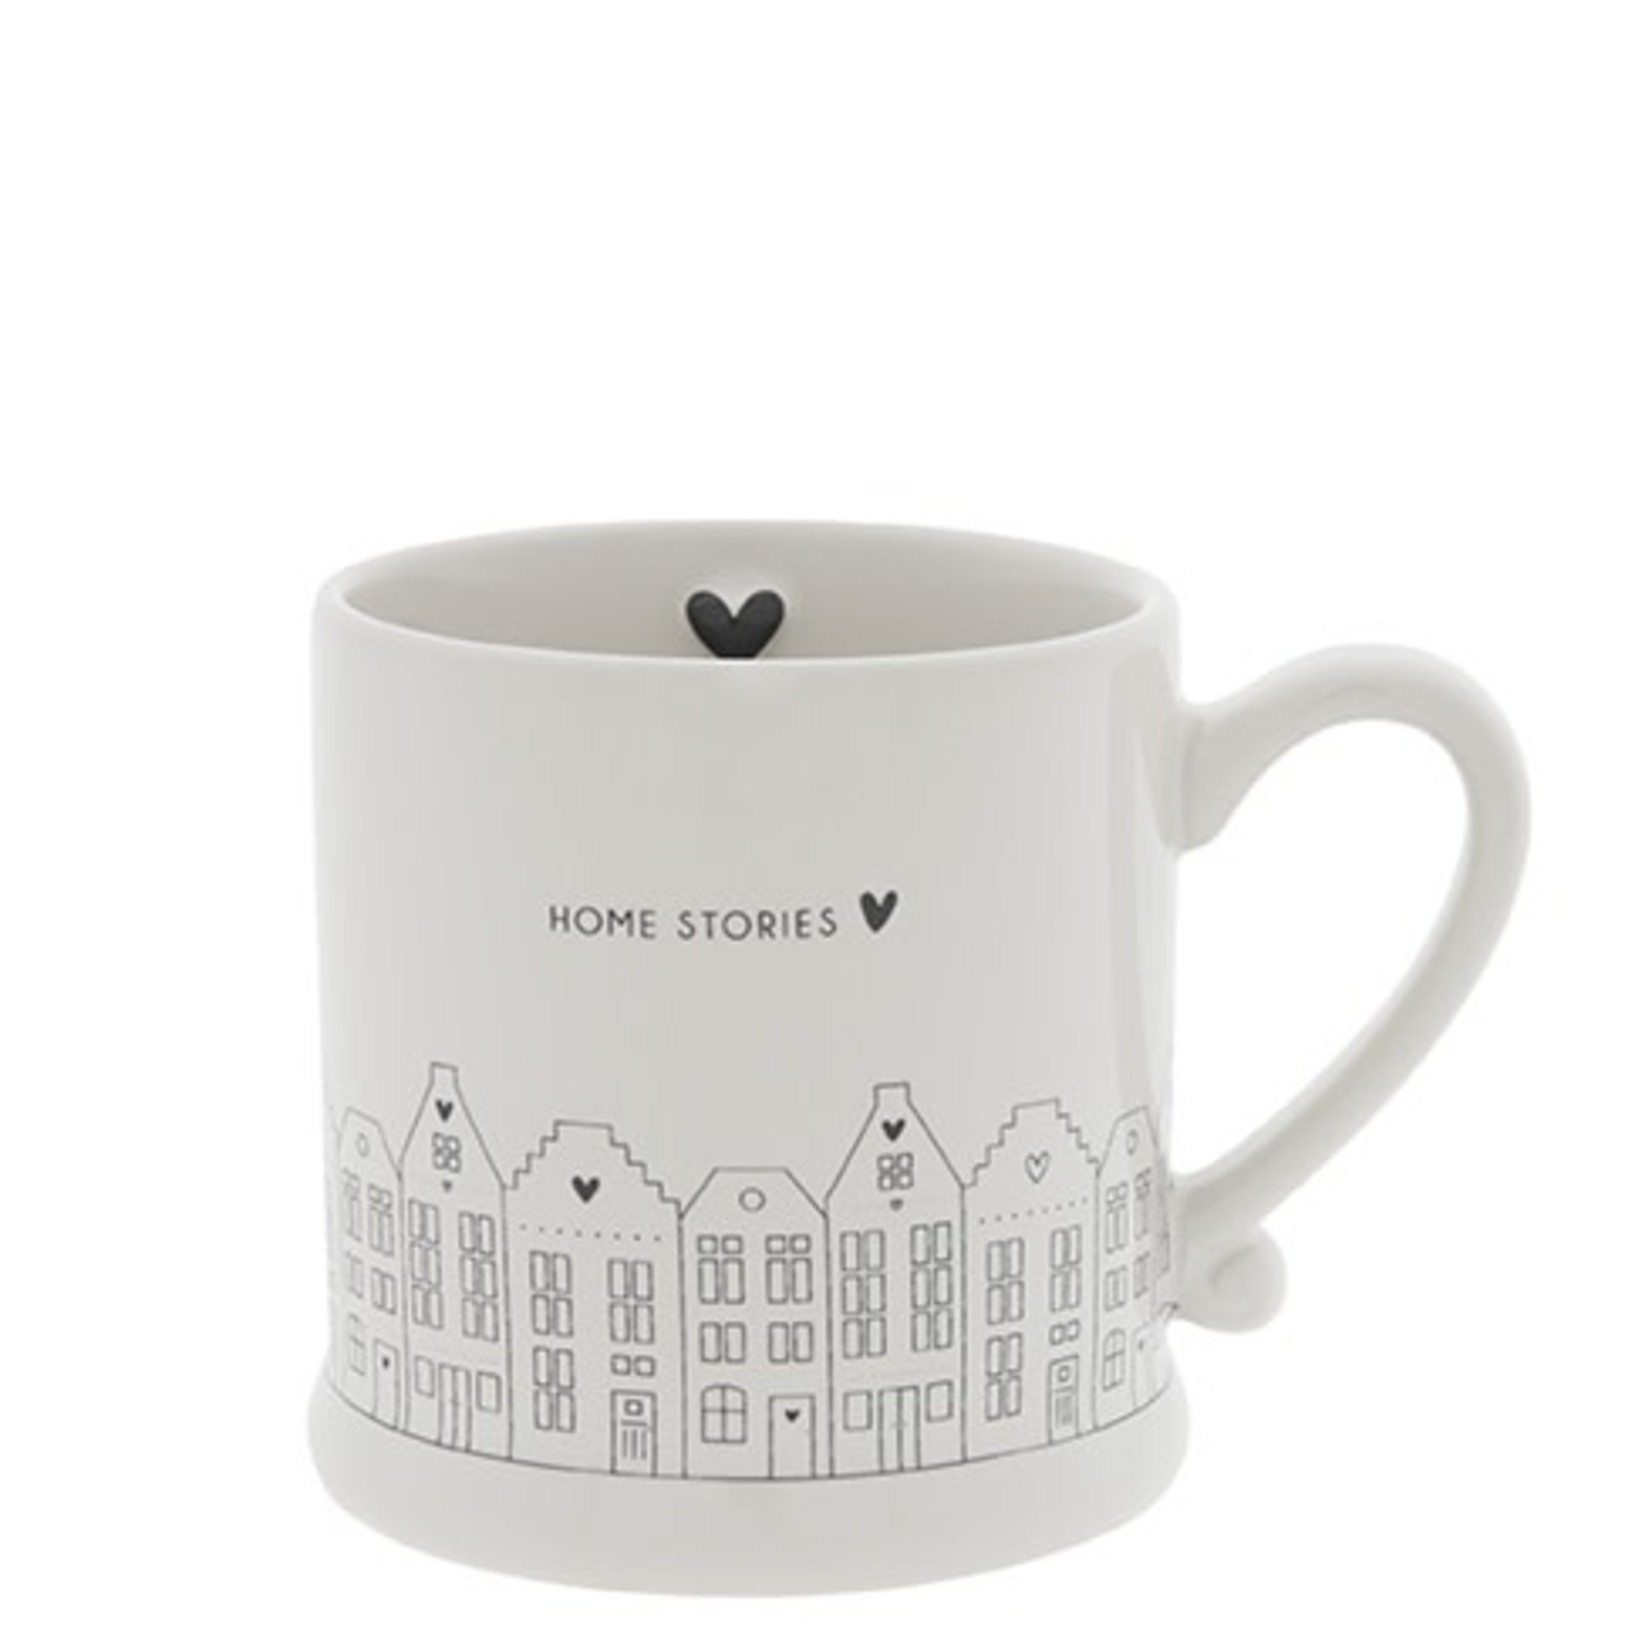 Bastion Collections Mug small White Canal Houses Home Stories in Black